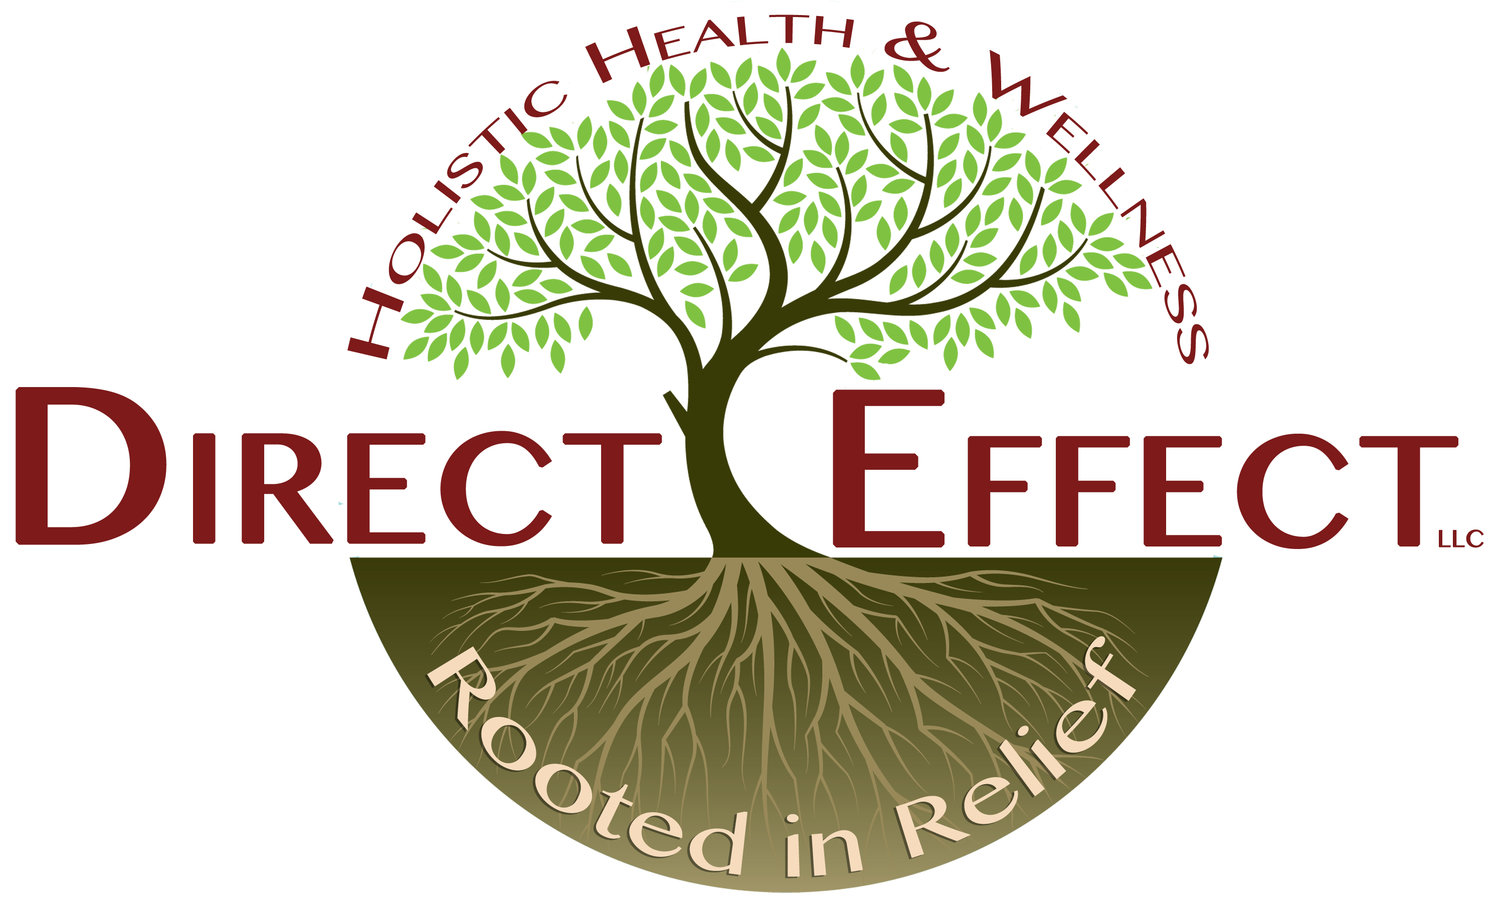 Direct Effect Holistic Health